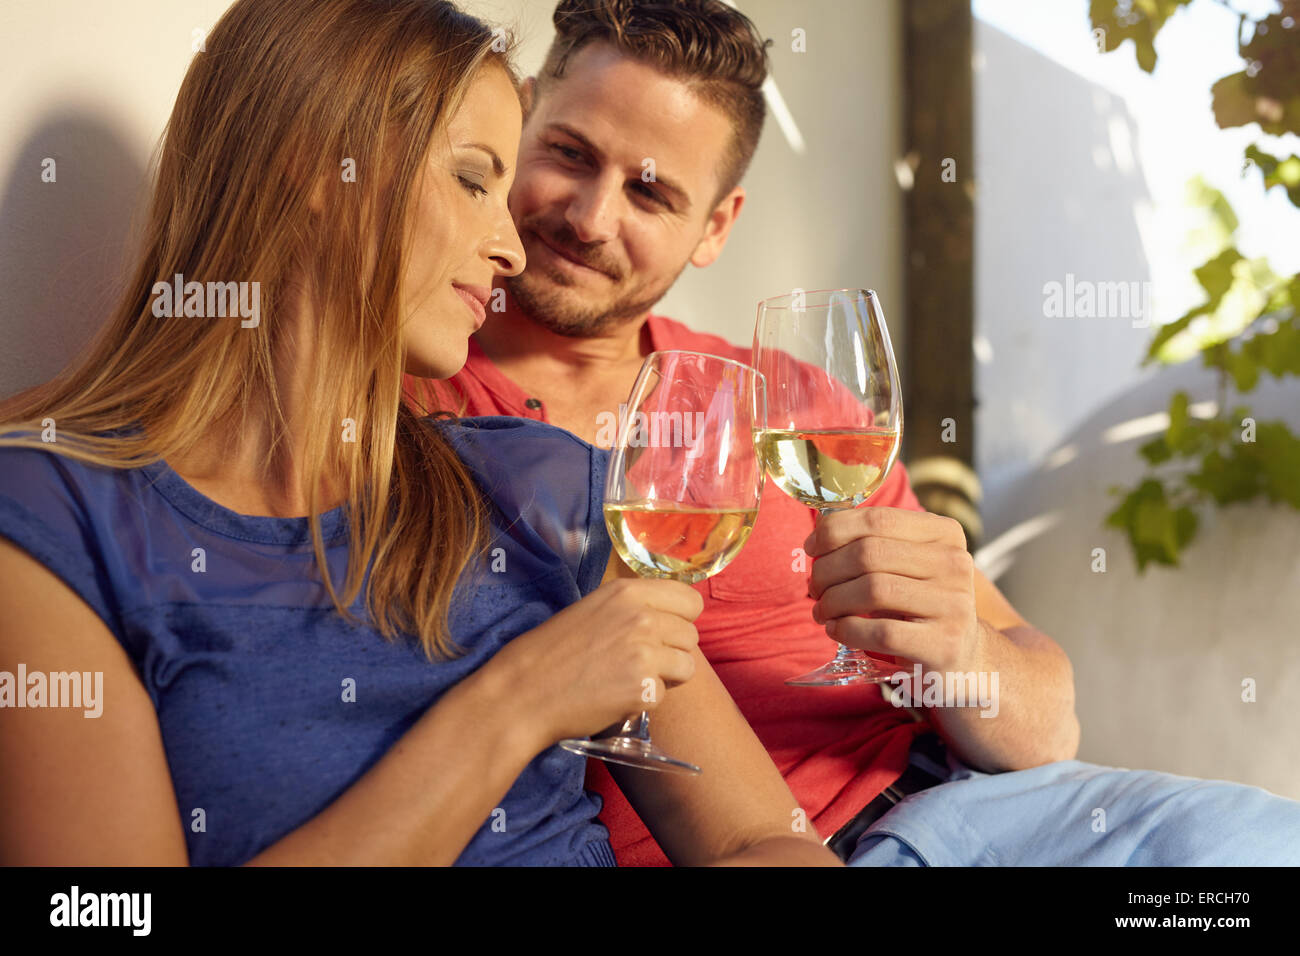 Young couple celebrating with white wine together, outdoors. Young man and woman toasting wine glass while sitting - Stock Image